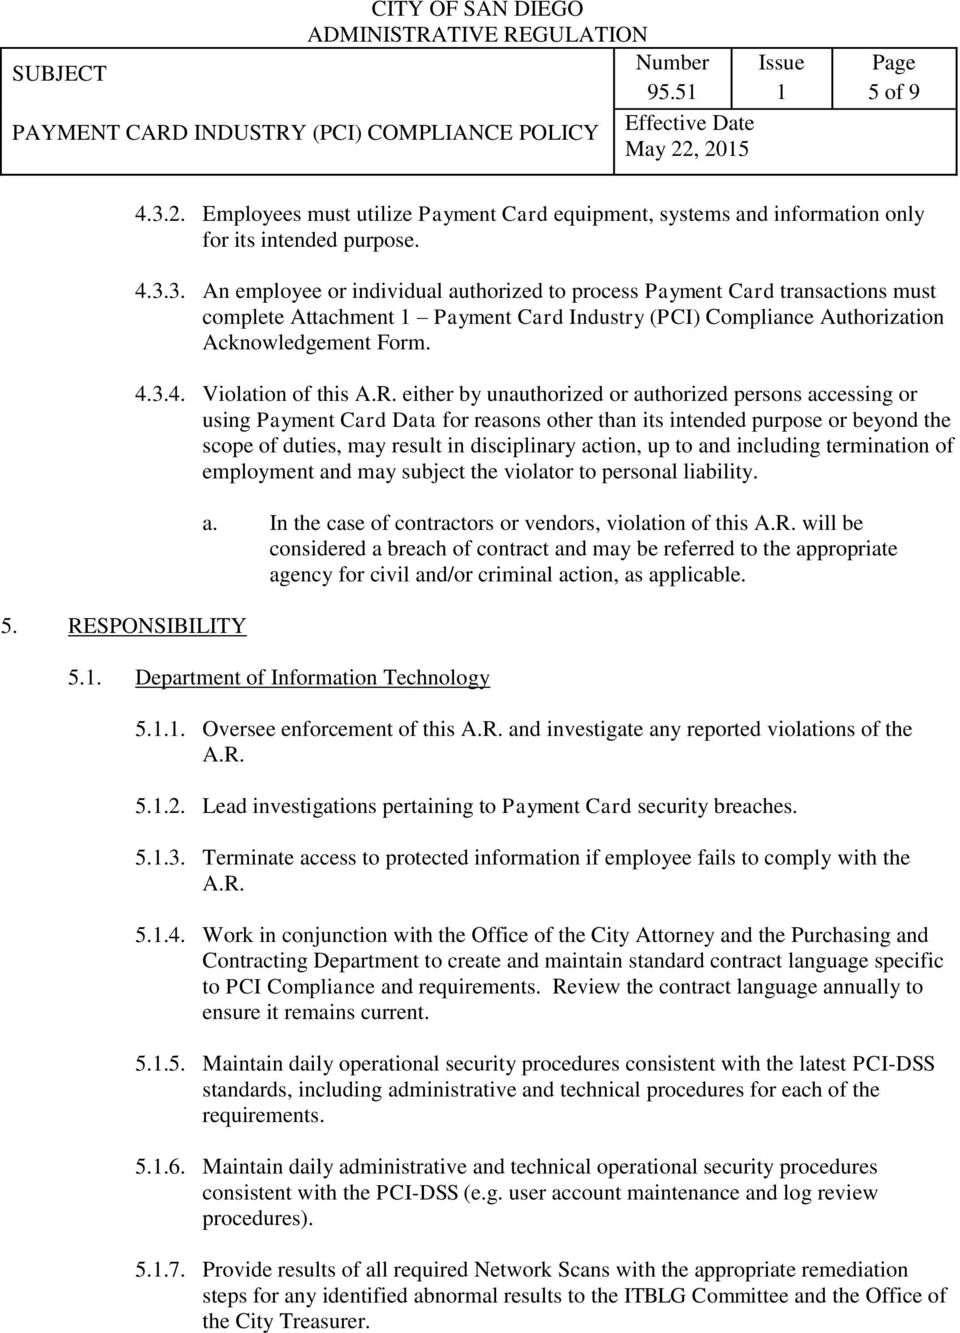 3. An employee or individual authorized to process Payment Card transactions must complete Attachment Payment Card Industry (PCI) Compliance Authorization Acknowledgement Form. 4.3.4. Violation of this A.